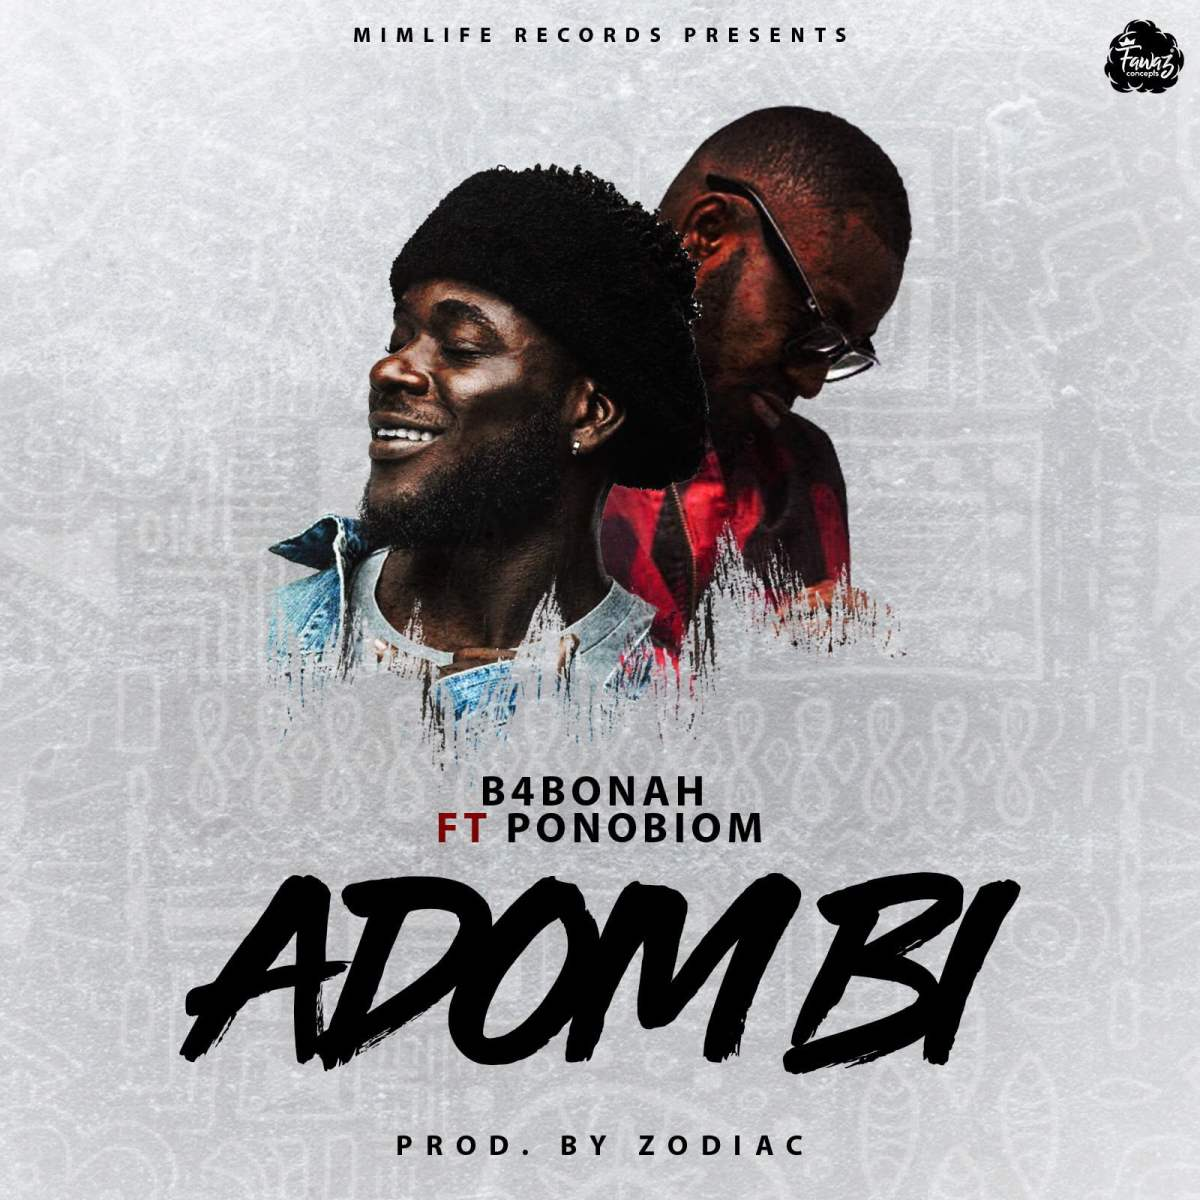 B4Bonah ft Yaa Pono - Adom Bi (Nuff Blessings) (Prod. by Zodiac)